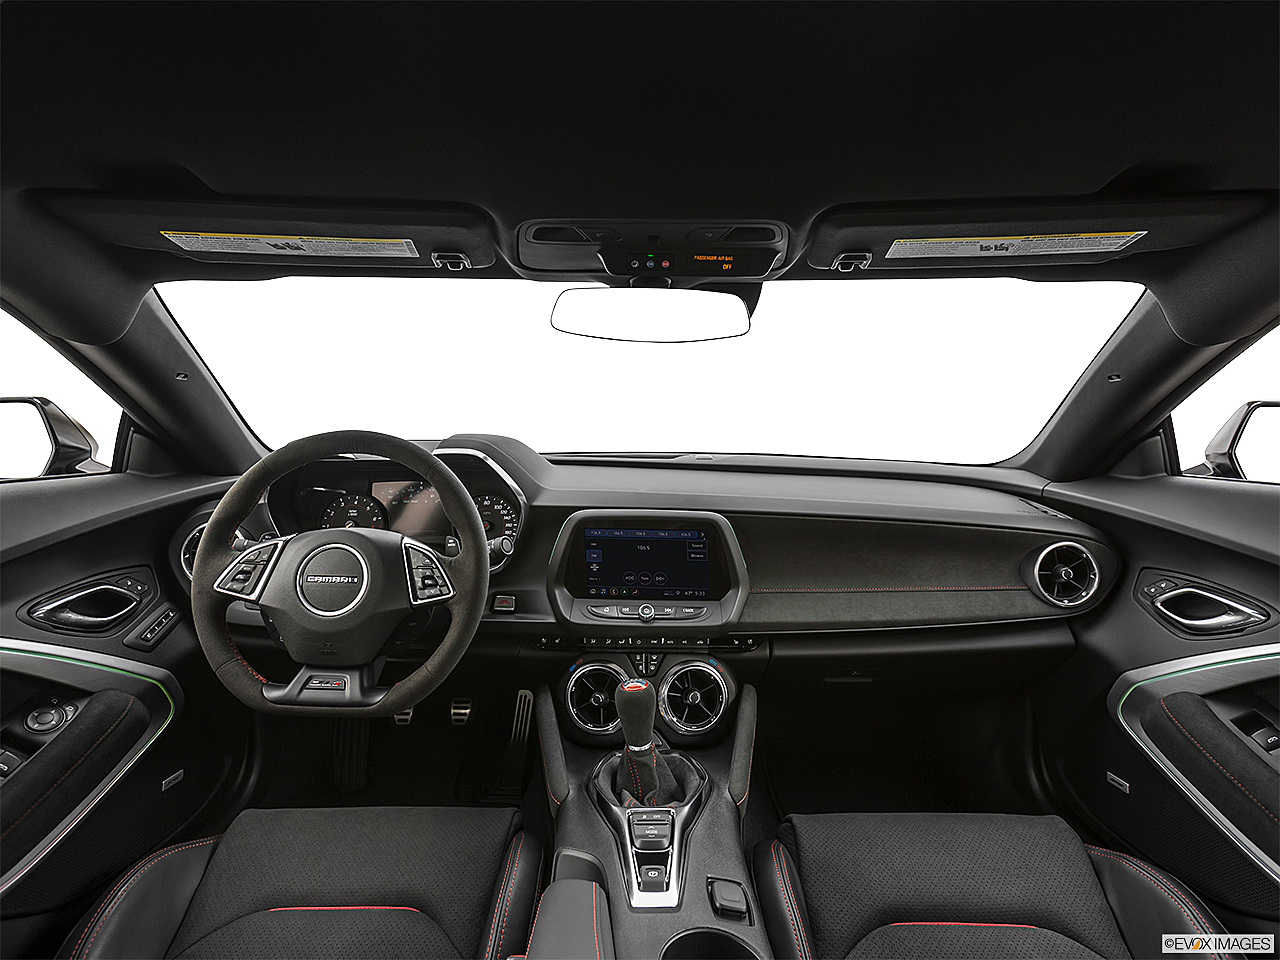 2019 Chevrolet Camaro ZL1, centered wide dash shot